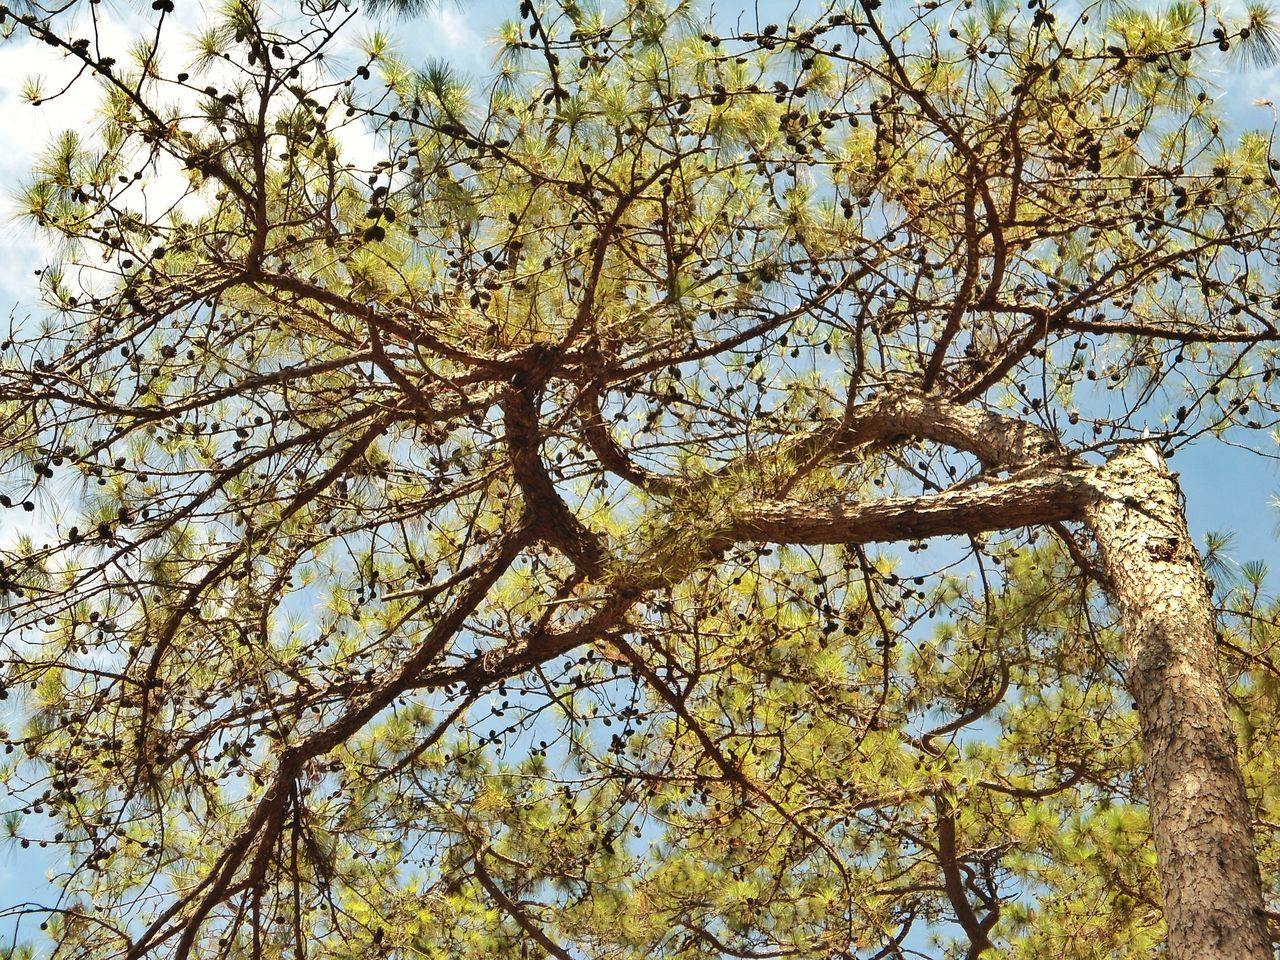 Low Angle View Tree Nature Growth No People Sky Beauty In Nature Full Frame Branch Outdoors Backgrounds Day Tranquility Sunlight Trees EyeEmBestEdits EyeEm Best Shots Best Shots EyeEm Best EyeEm Shot Beauty In Nature Tree Trees_collection Layers And Layers Low Angle View